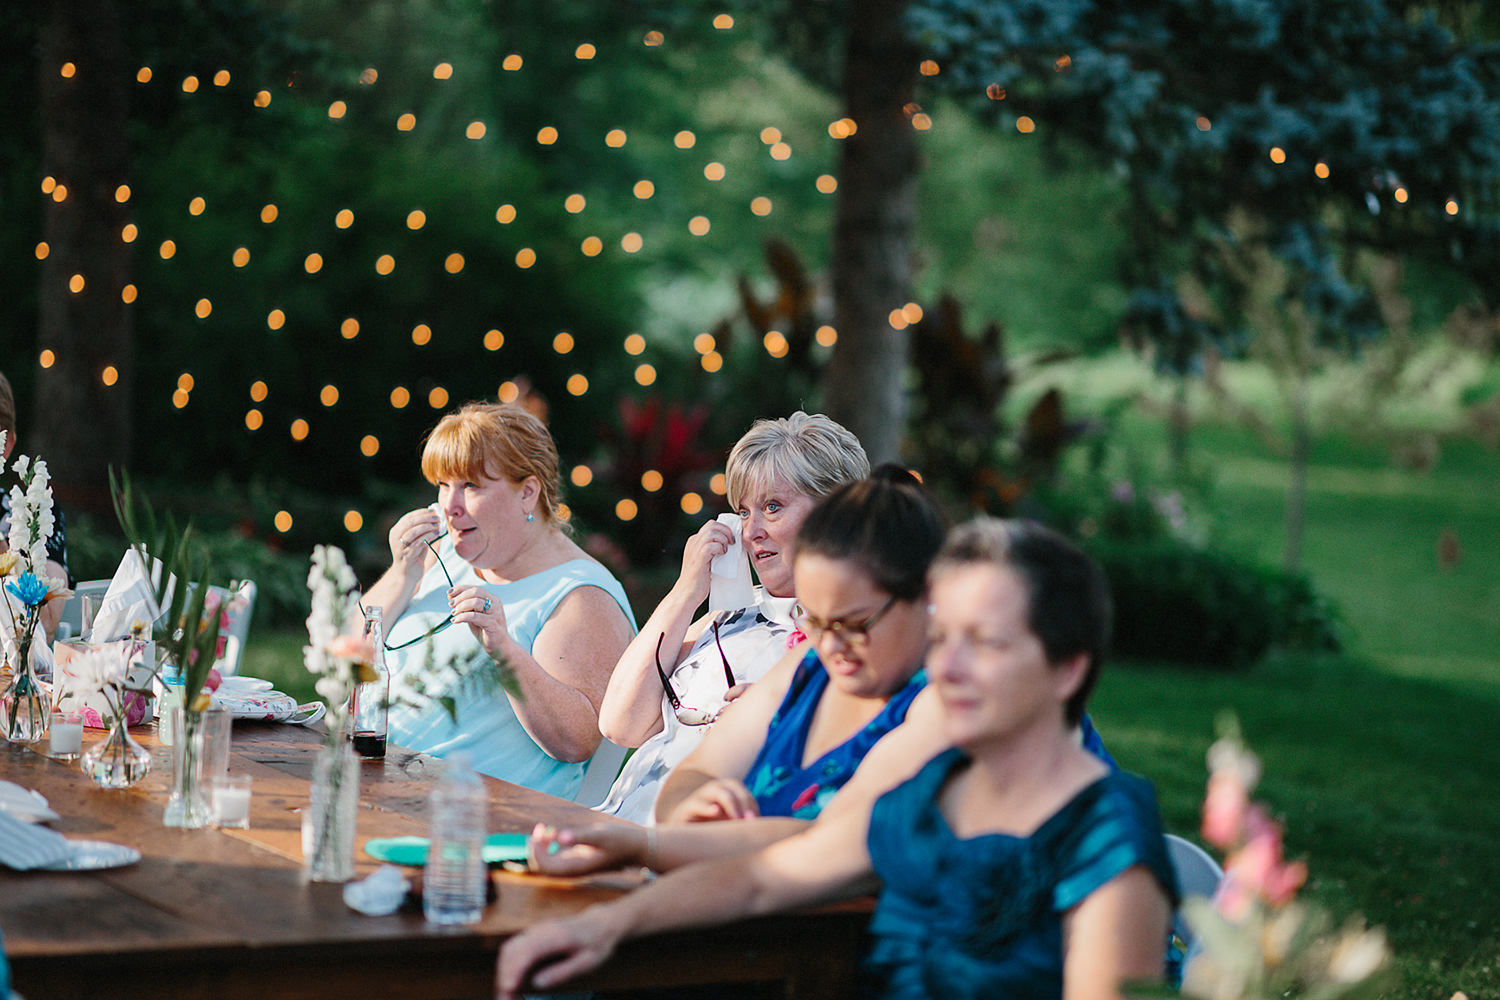 Backyard-toronto-film-photographer-ryanne-hollies-photography-diy-string-lights-and-lanterns-reception-dinner-documentary-wooden-harvest-tables-diy-decor-speeches-bride-and-grooms-dad-speech-cheering-emotional-everyone-crying-cute.jpg